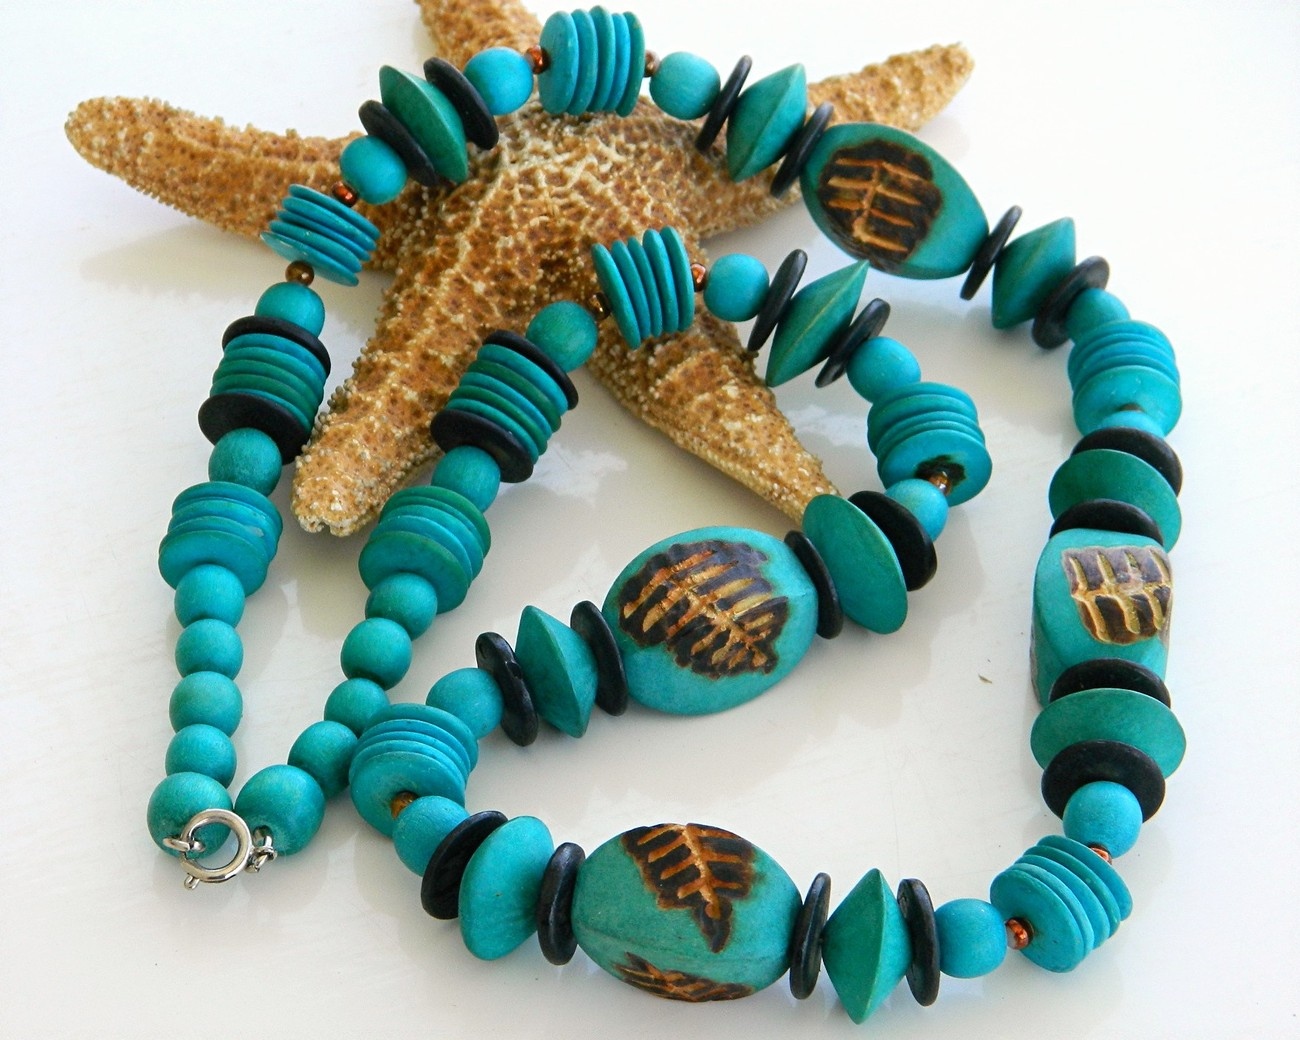 Vintage Handmade Wooden Necklace Chunky Turquoise Beads Wood.jpg